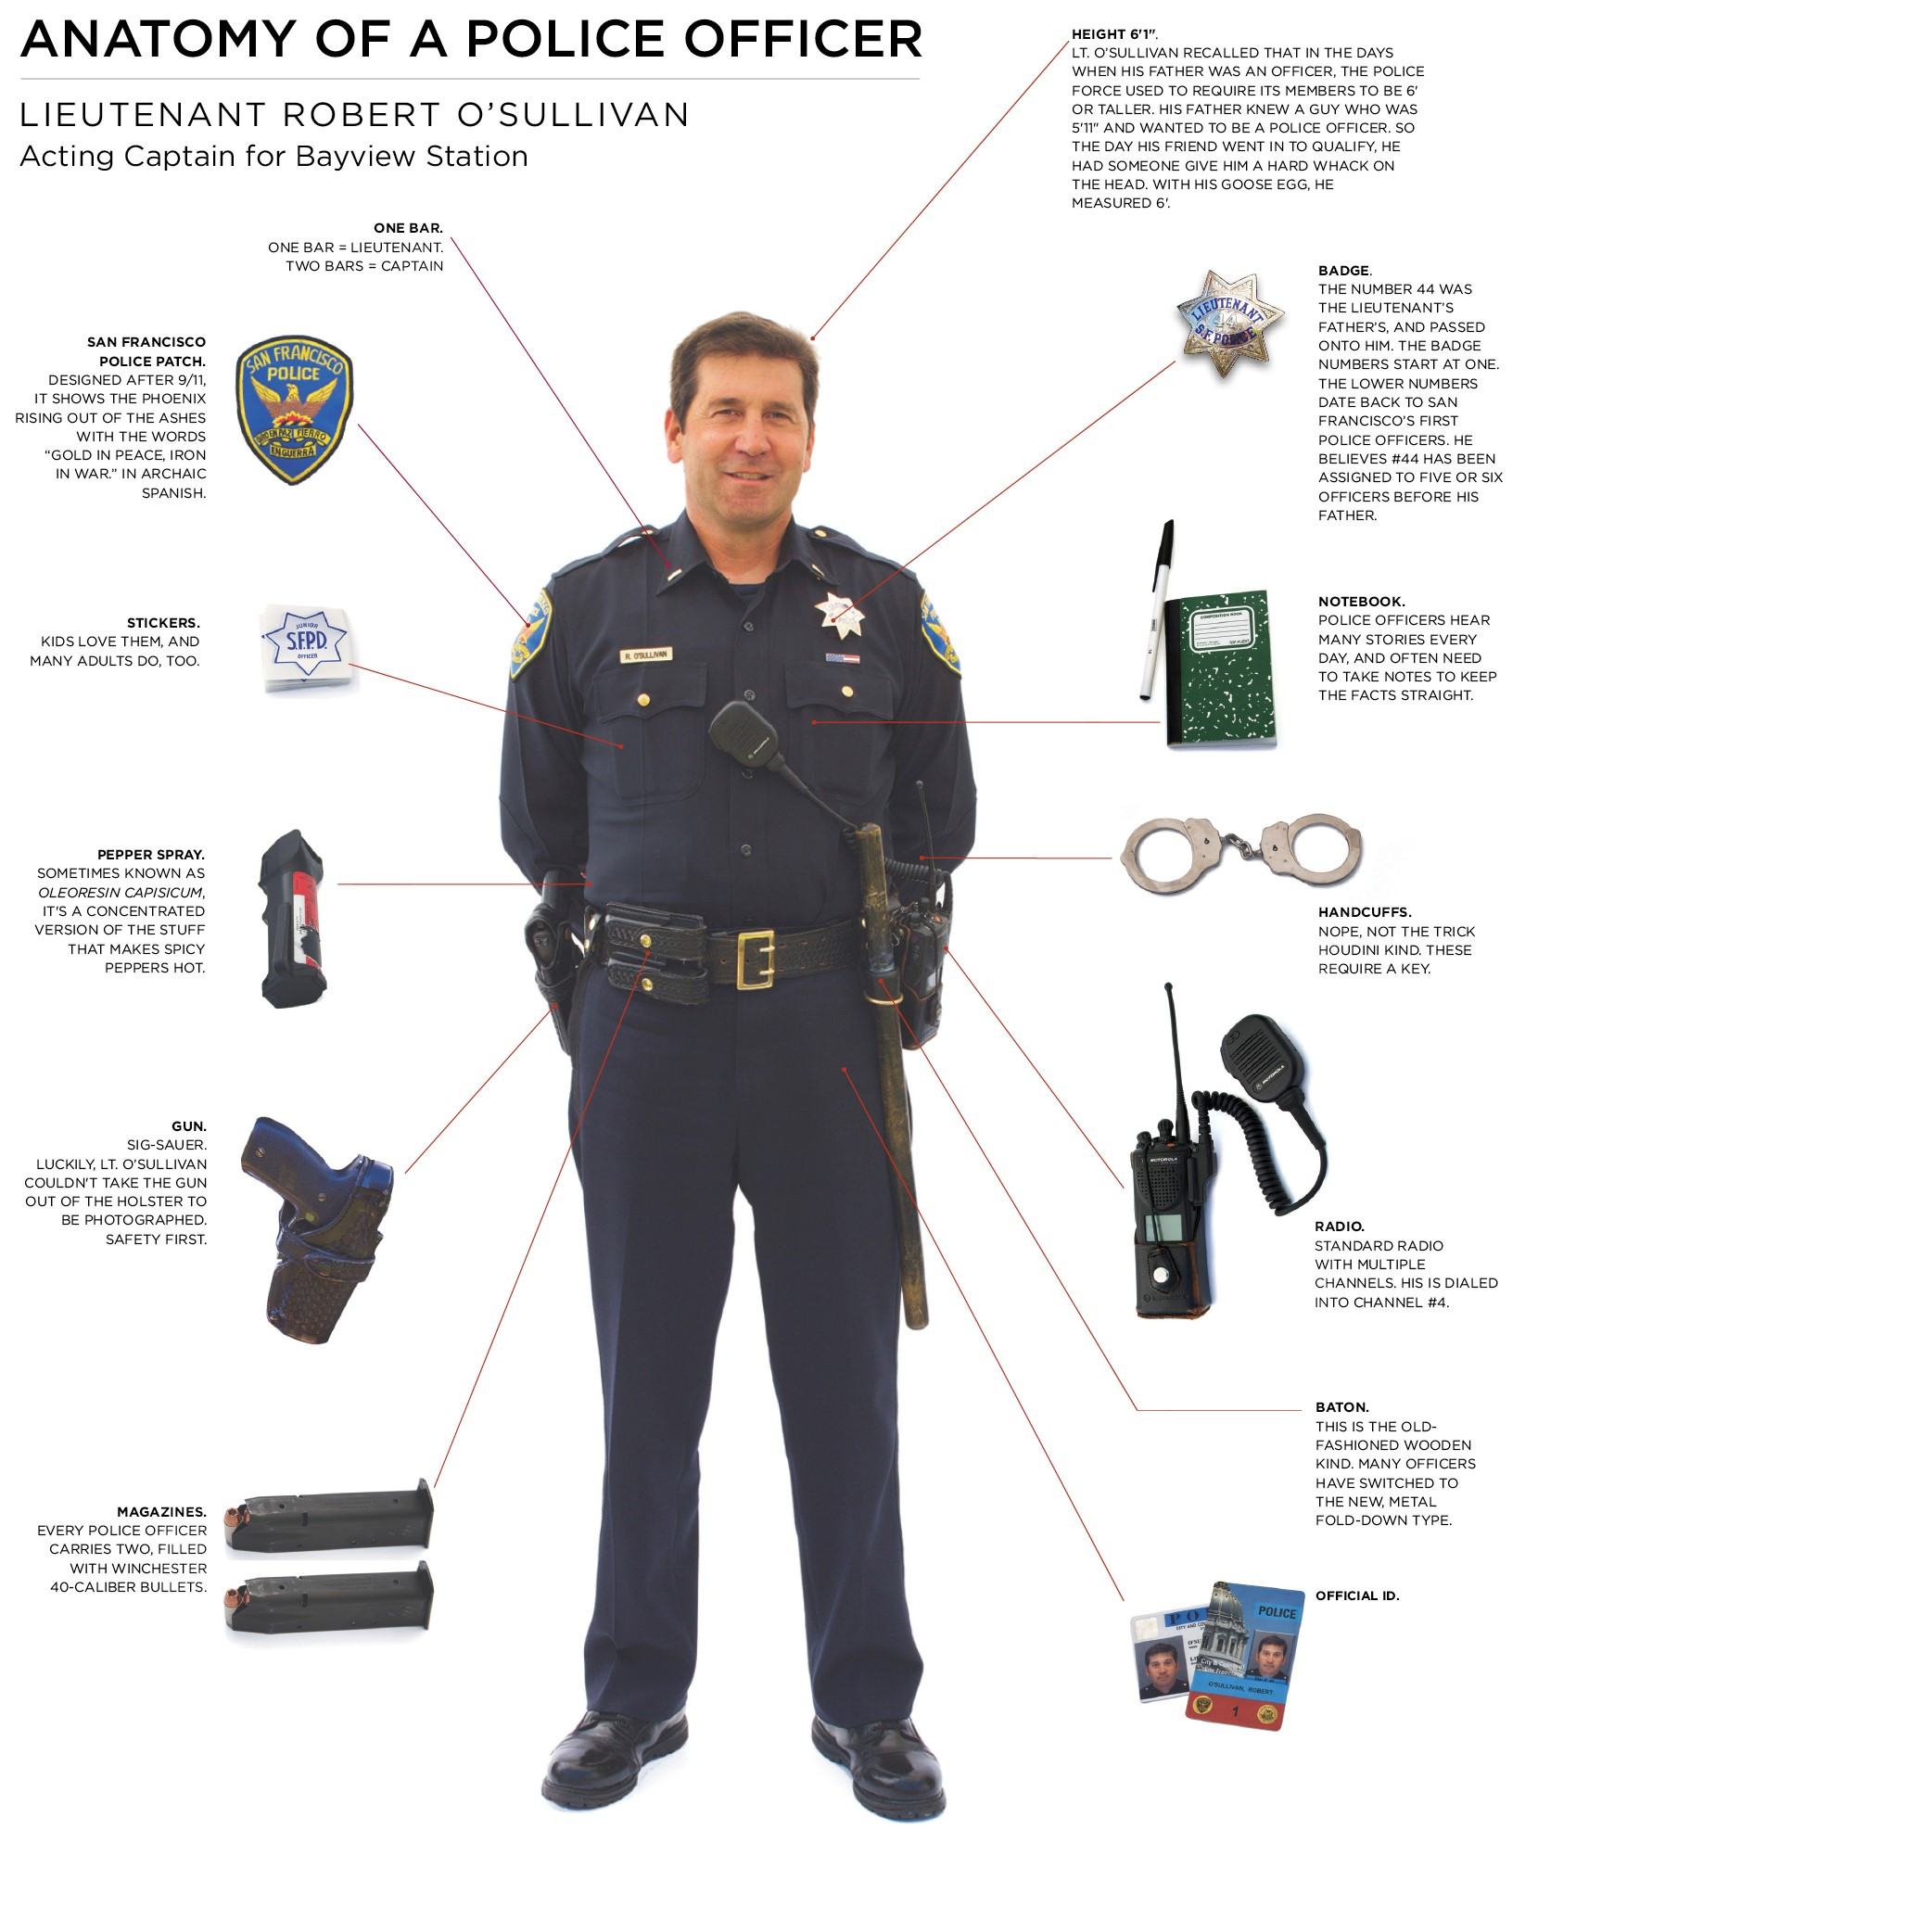 ANATOMY OF A POLICE OFFICER